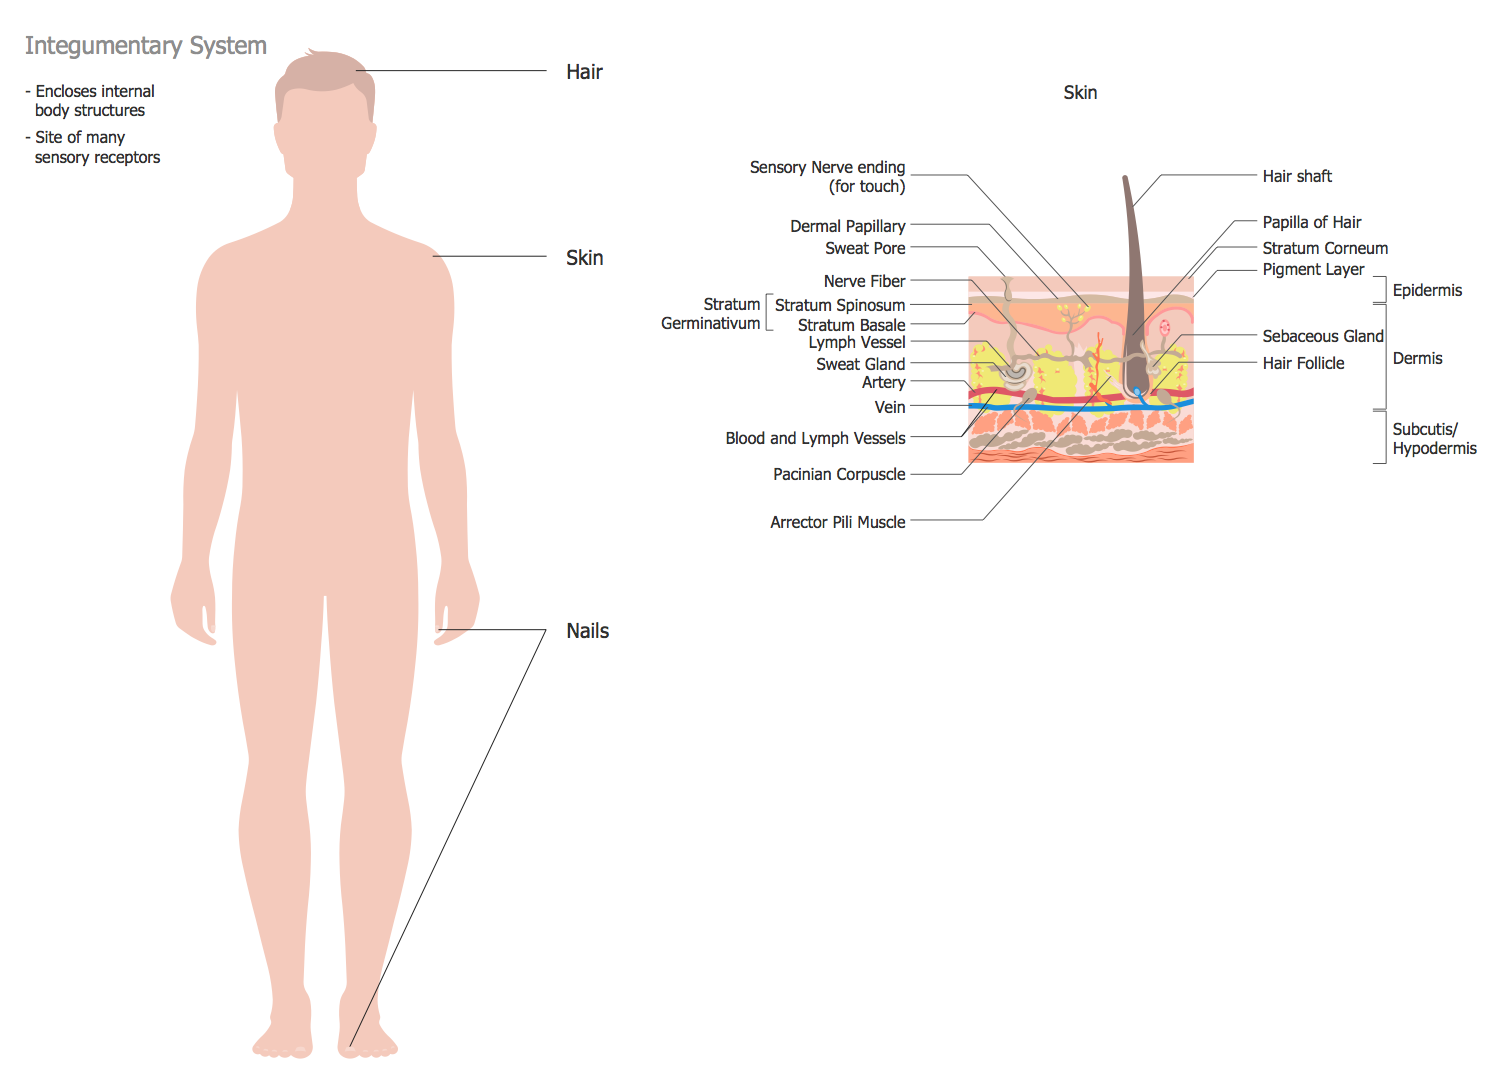 Human Anatomy — #Integumentary #System | This system includes the skin,  hair and